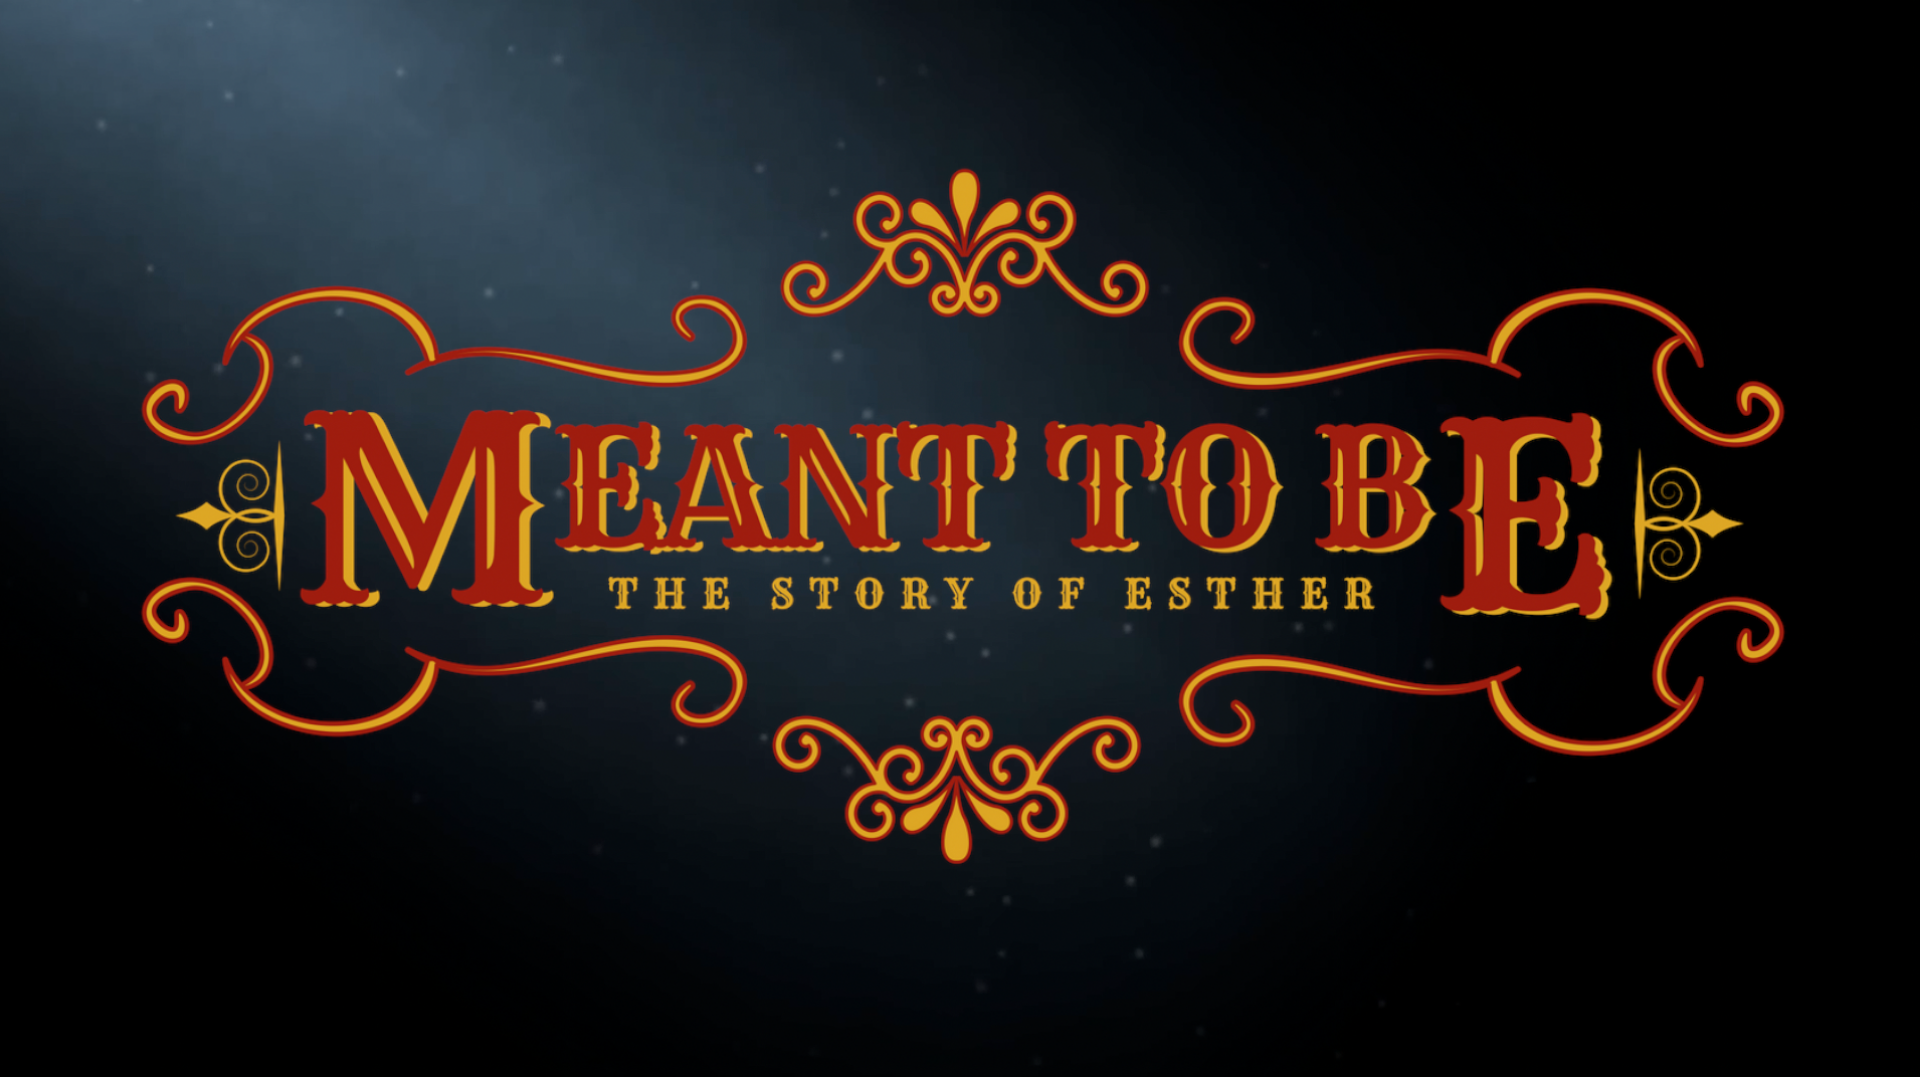 MEANT to BE (1).png